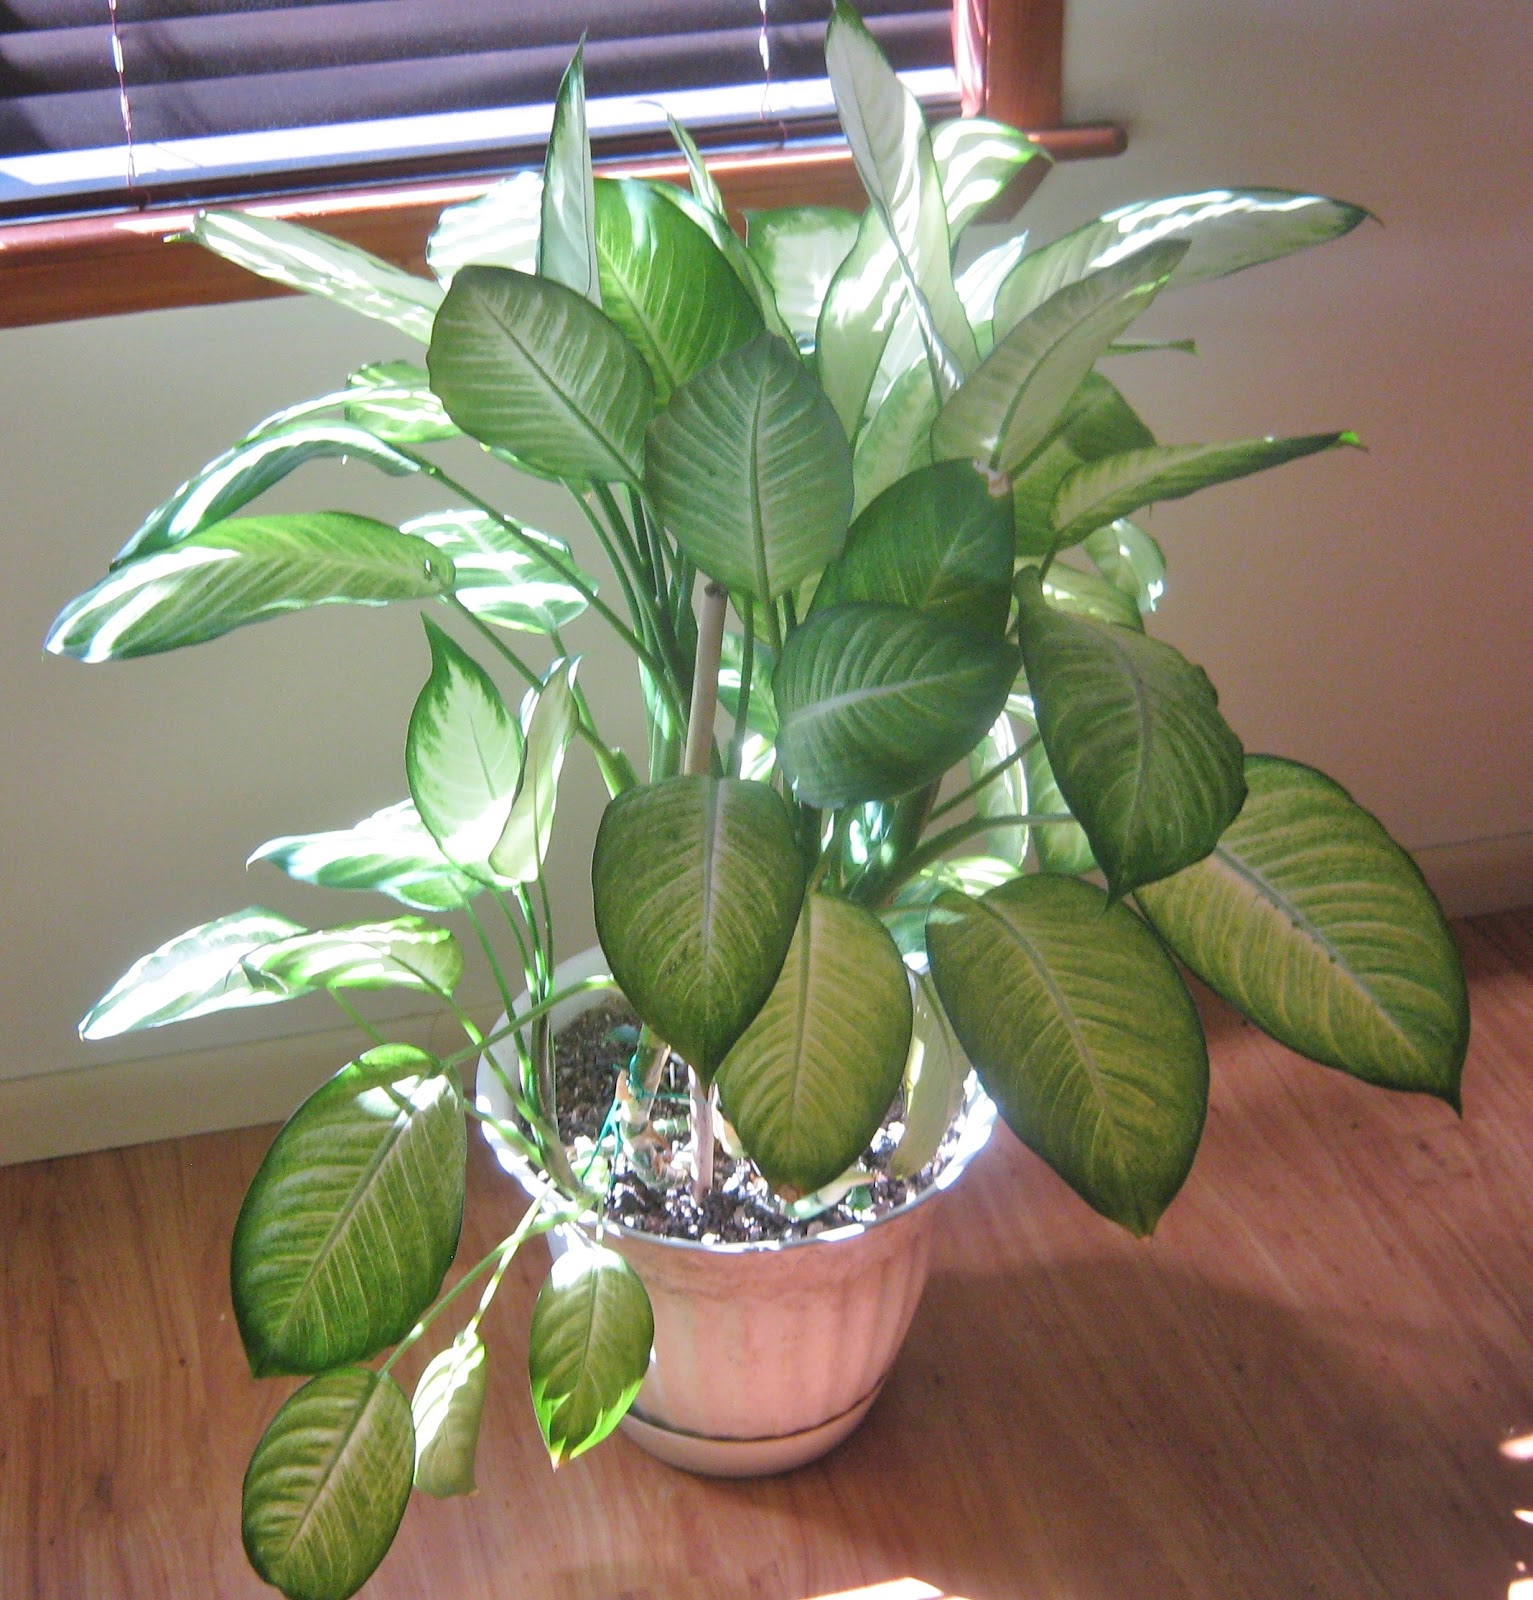 Indoor Plants How Many Needed Per Room For Clean Air